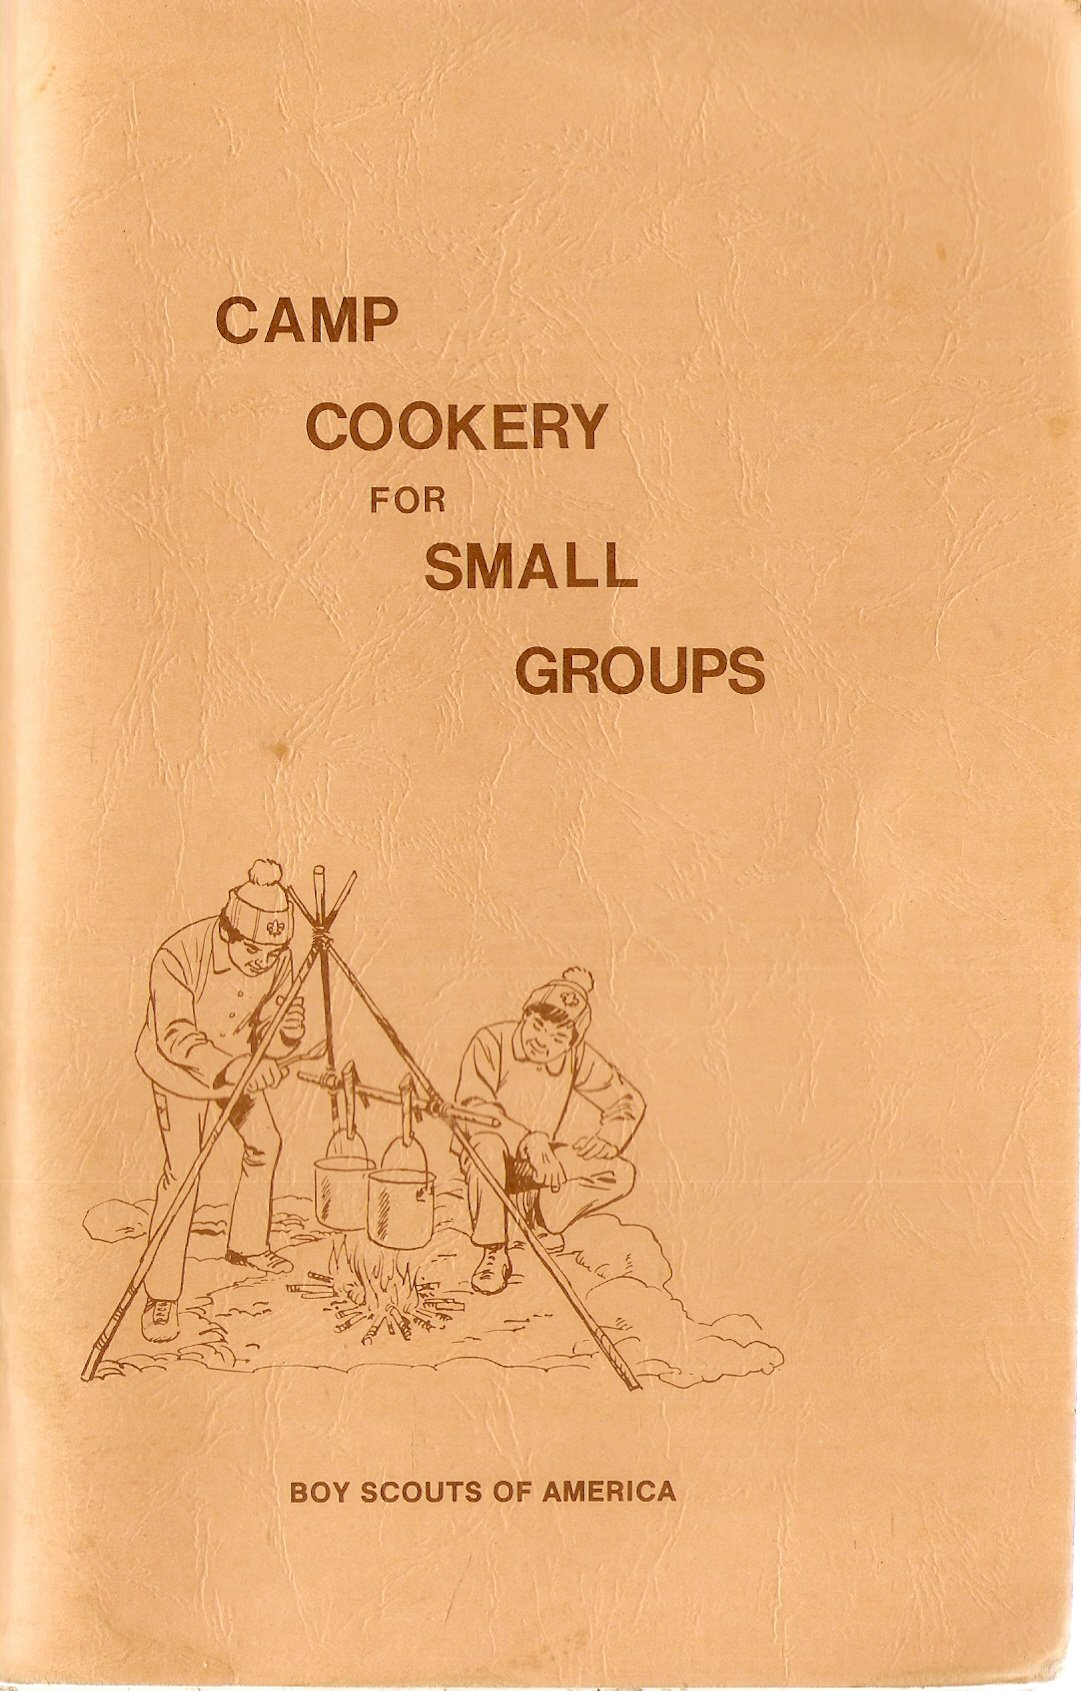 Camp Cookery for Small Groups for Boy Scouts of America - Revised Edition by Boy Scouts of America